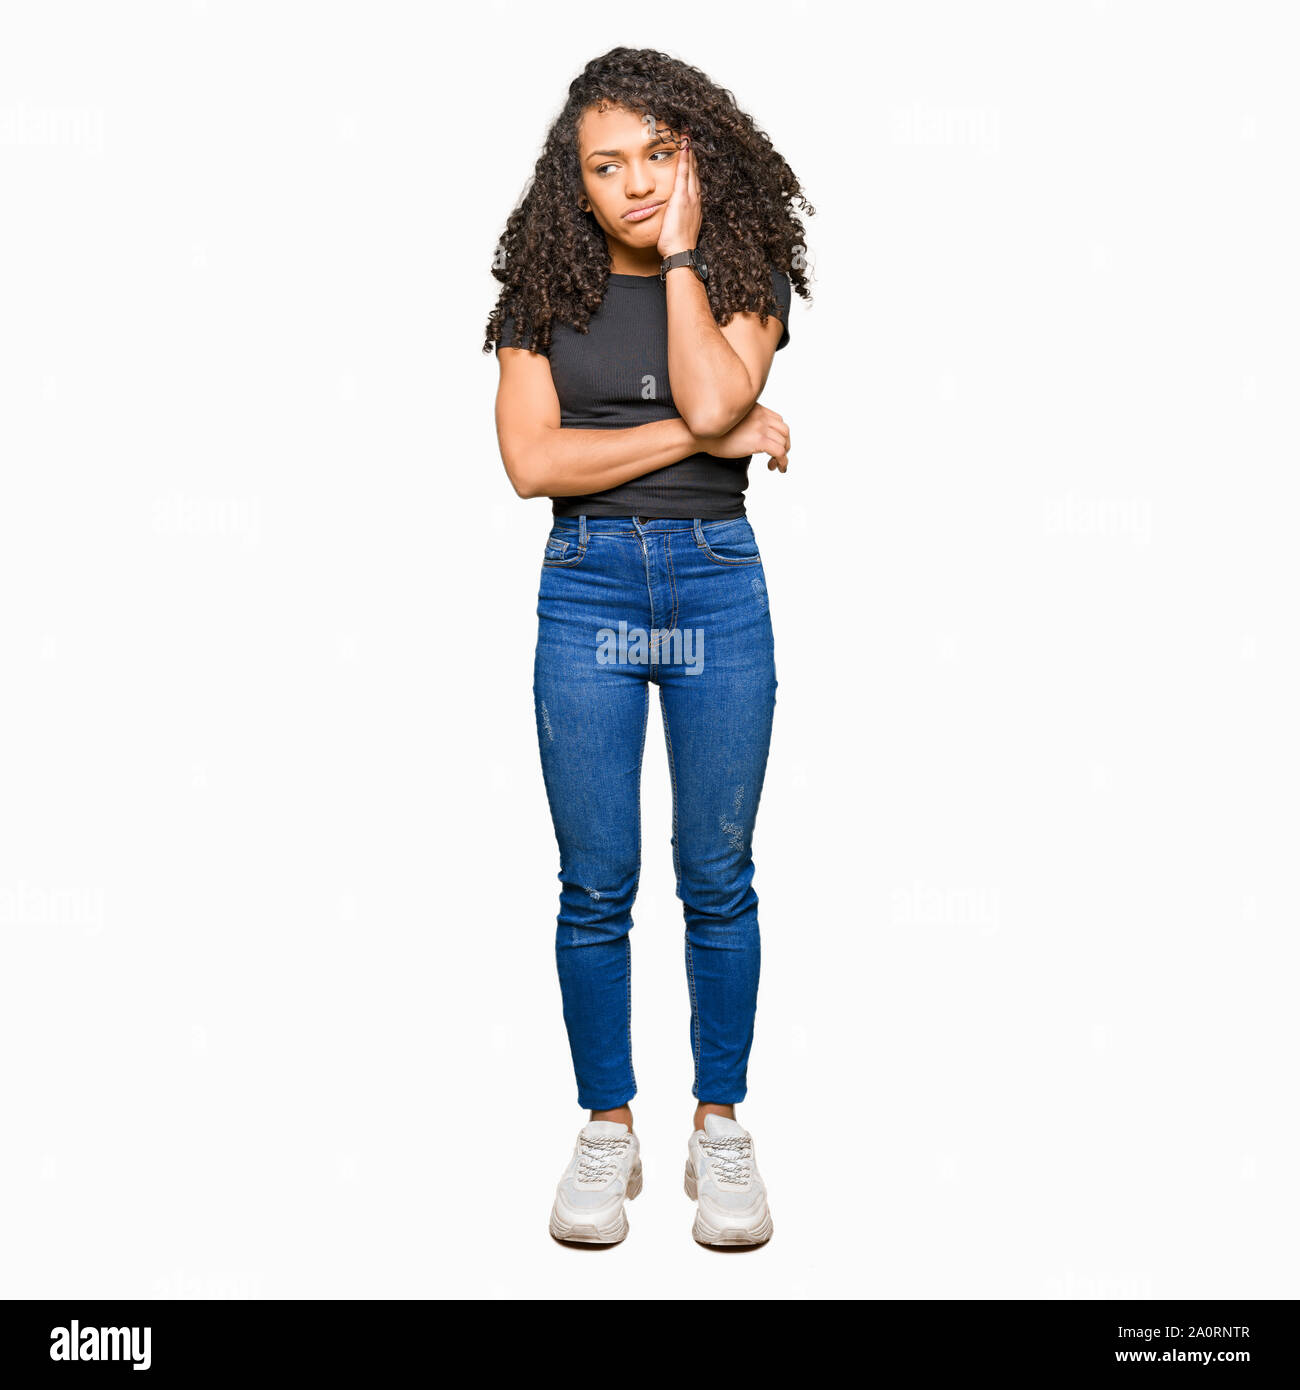 Young beautiful woman with curly hair thinking looking tired and bored with depression problems with crossed arms. Stock Photo